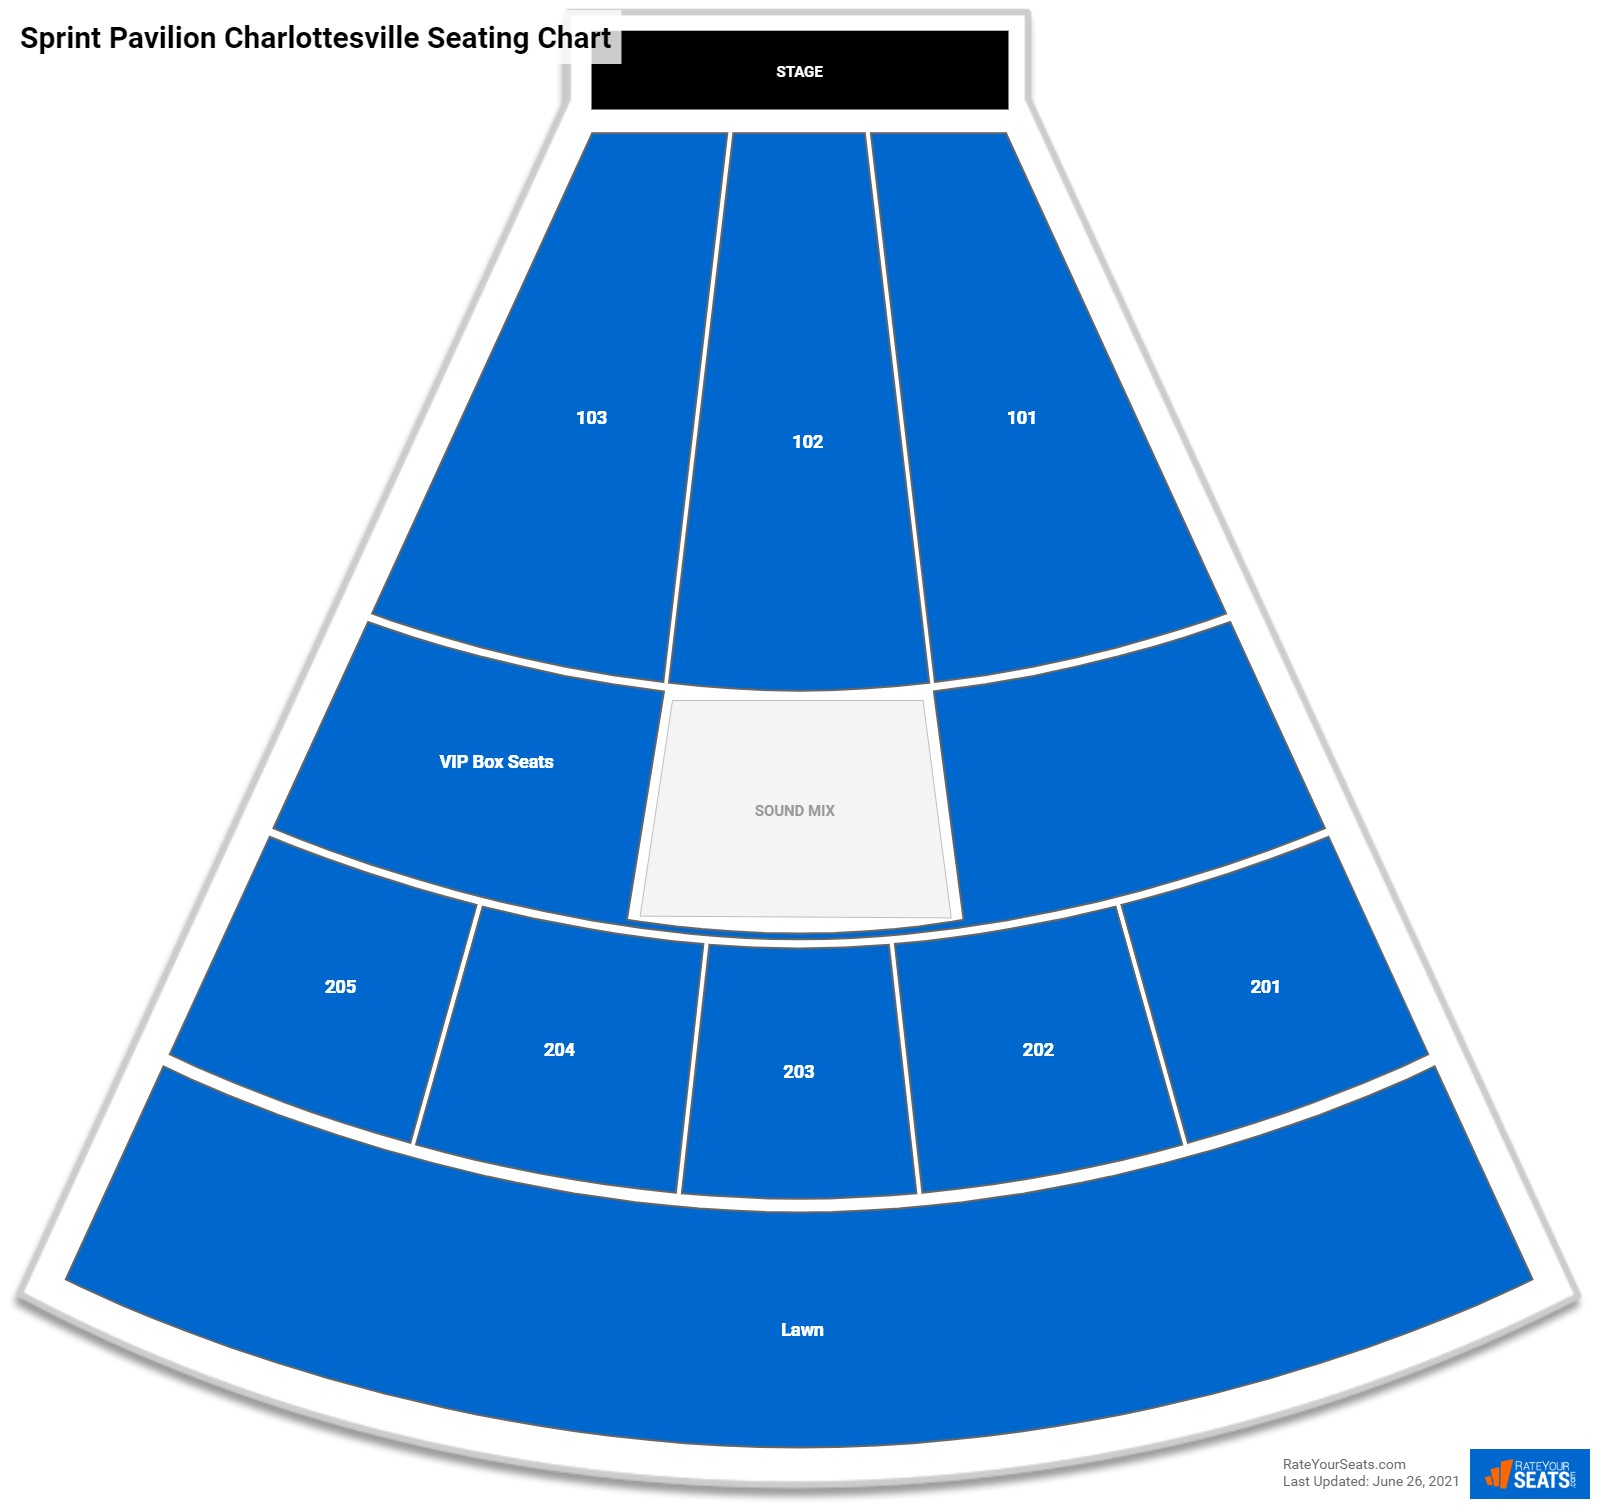 Sprint Pavilion Charlottesville Seating Chart